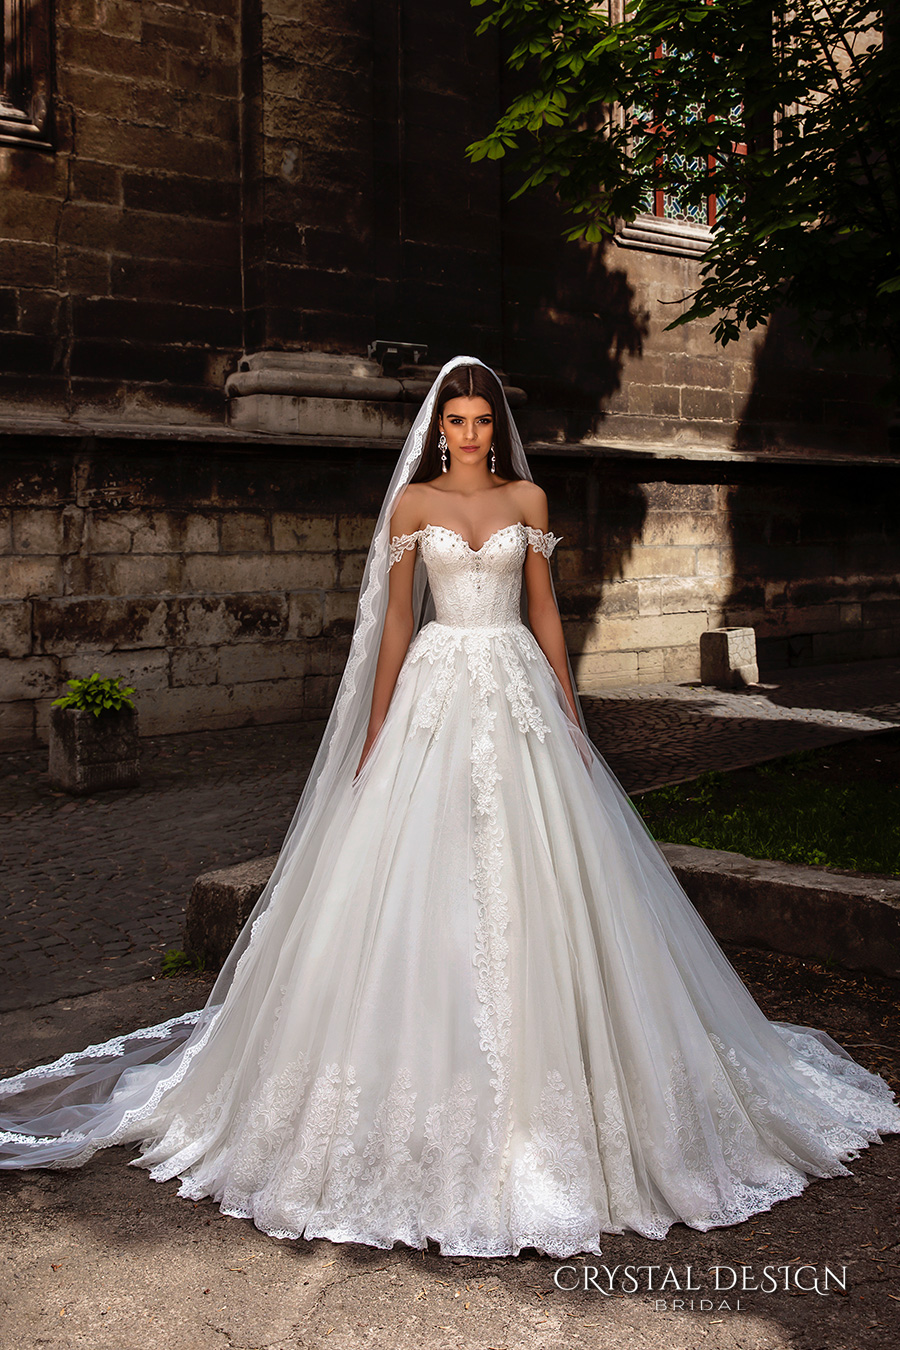 v neck wedding dress ball gown ball gown wedding dresses Ballgown Wedding Dresses A Dramatic Satin Ball Gown Has Bodice